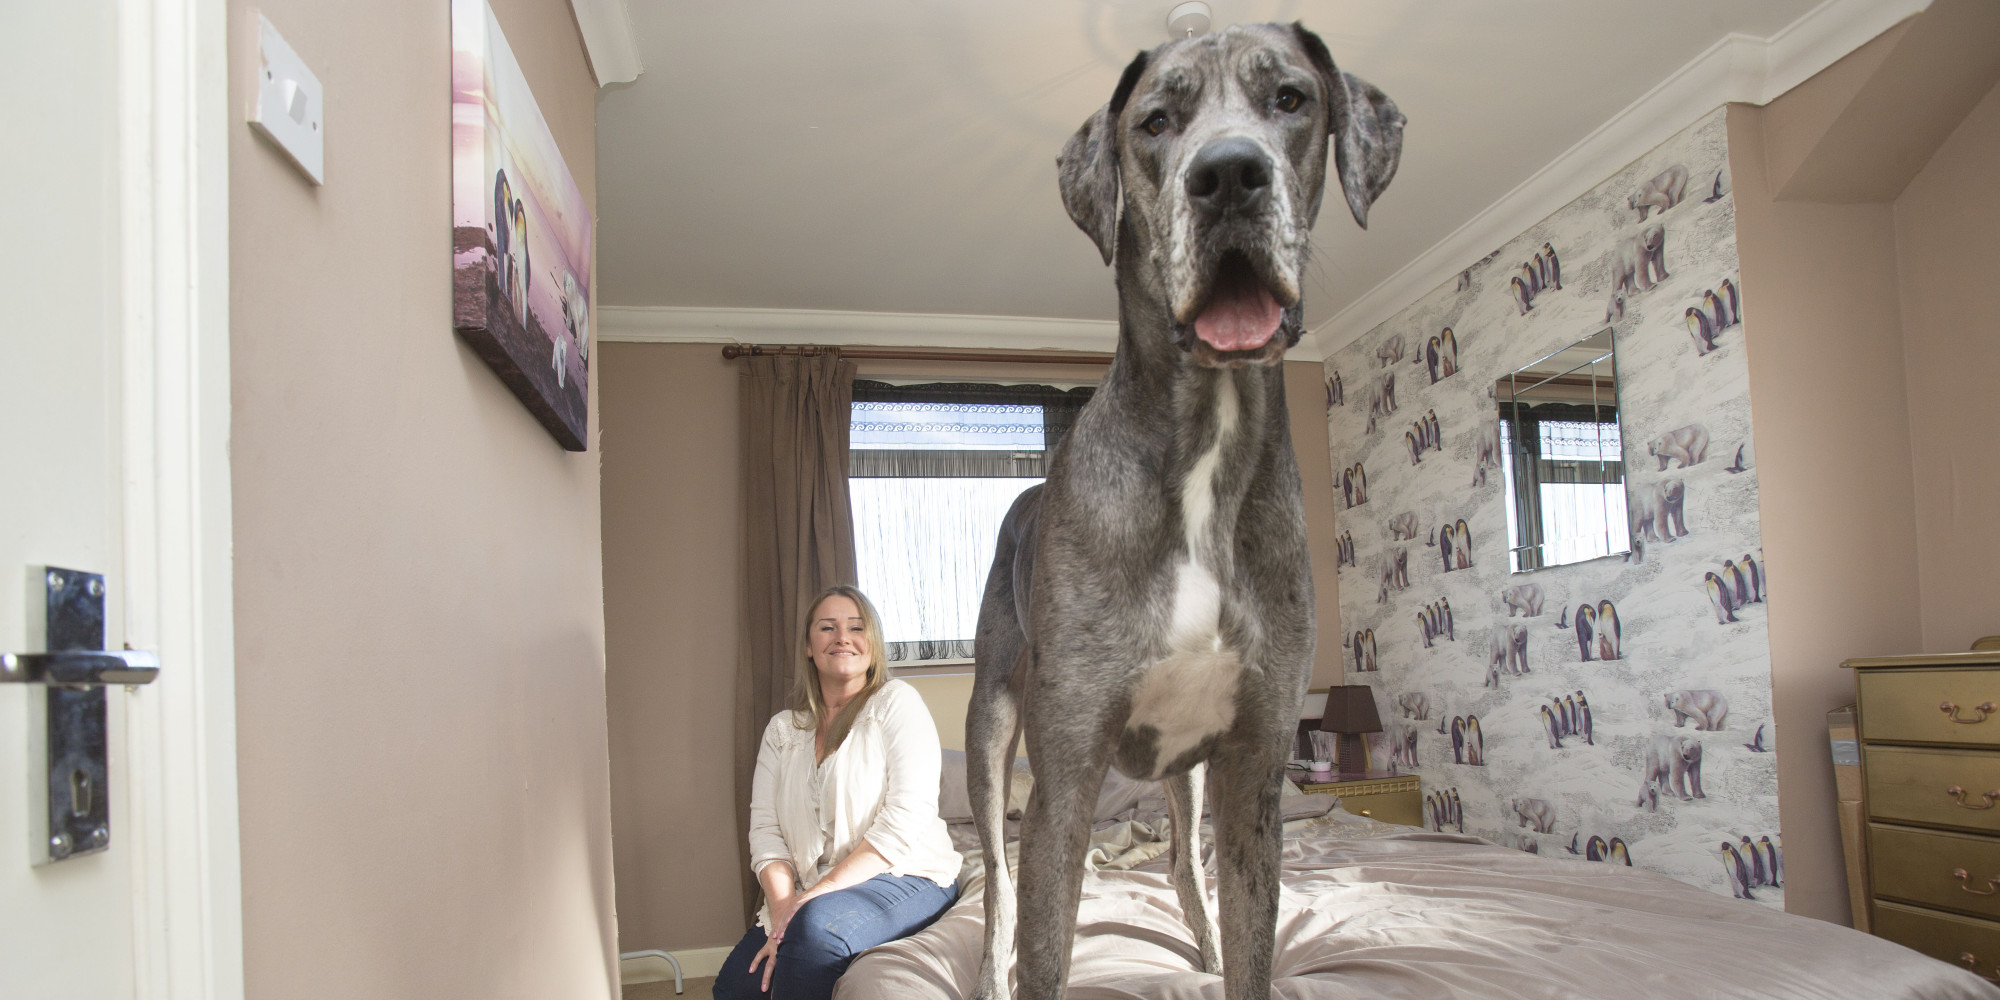 I A Great Dane Meet Britain's Biggest...